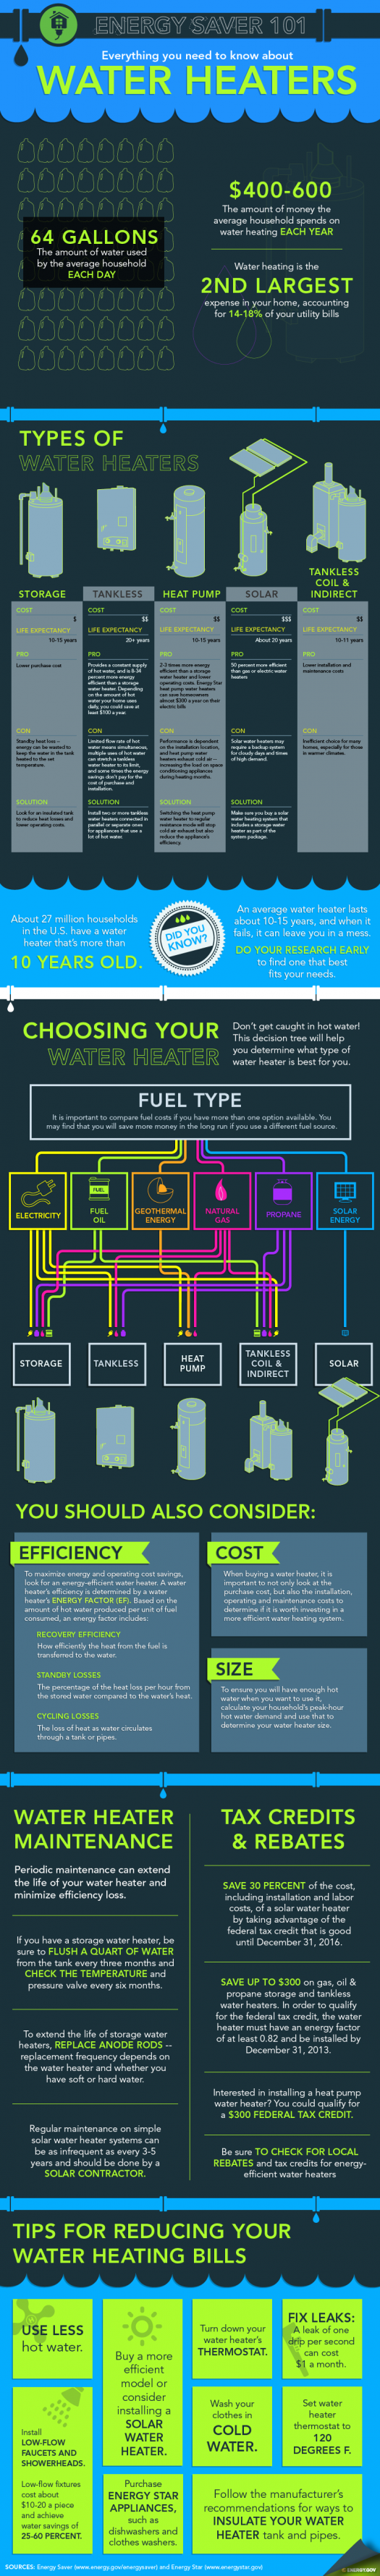 New Infographic and Projects to Keep Your Energy Bills Out of Hot ...